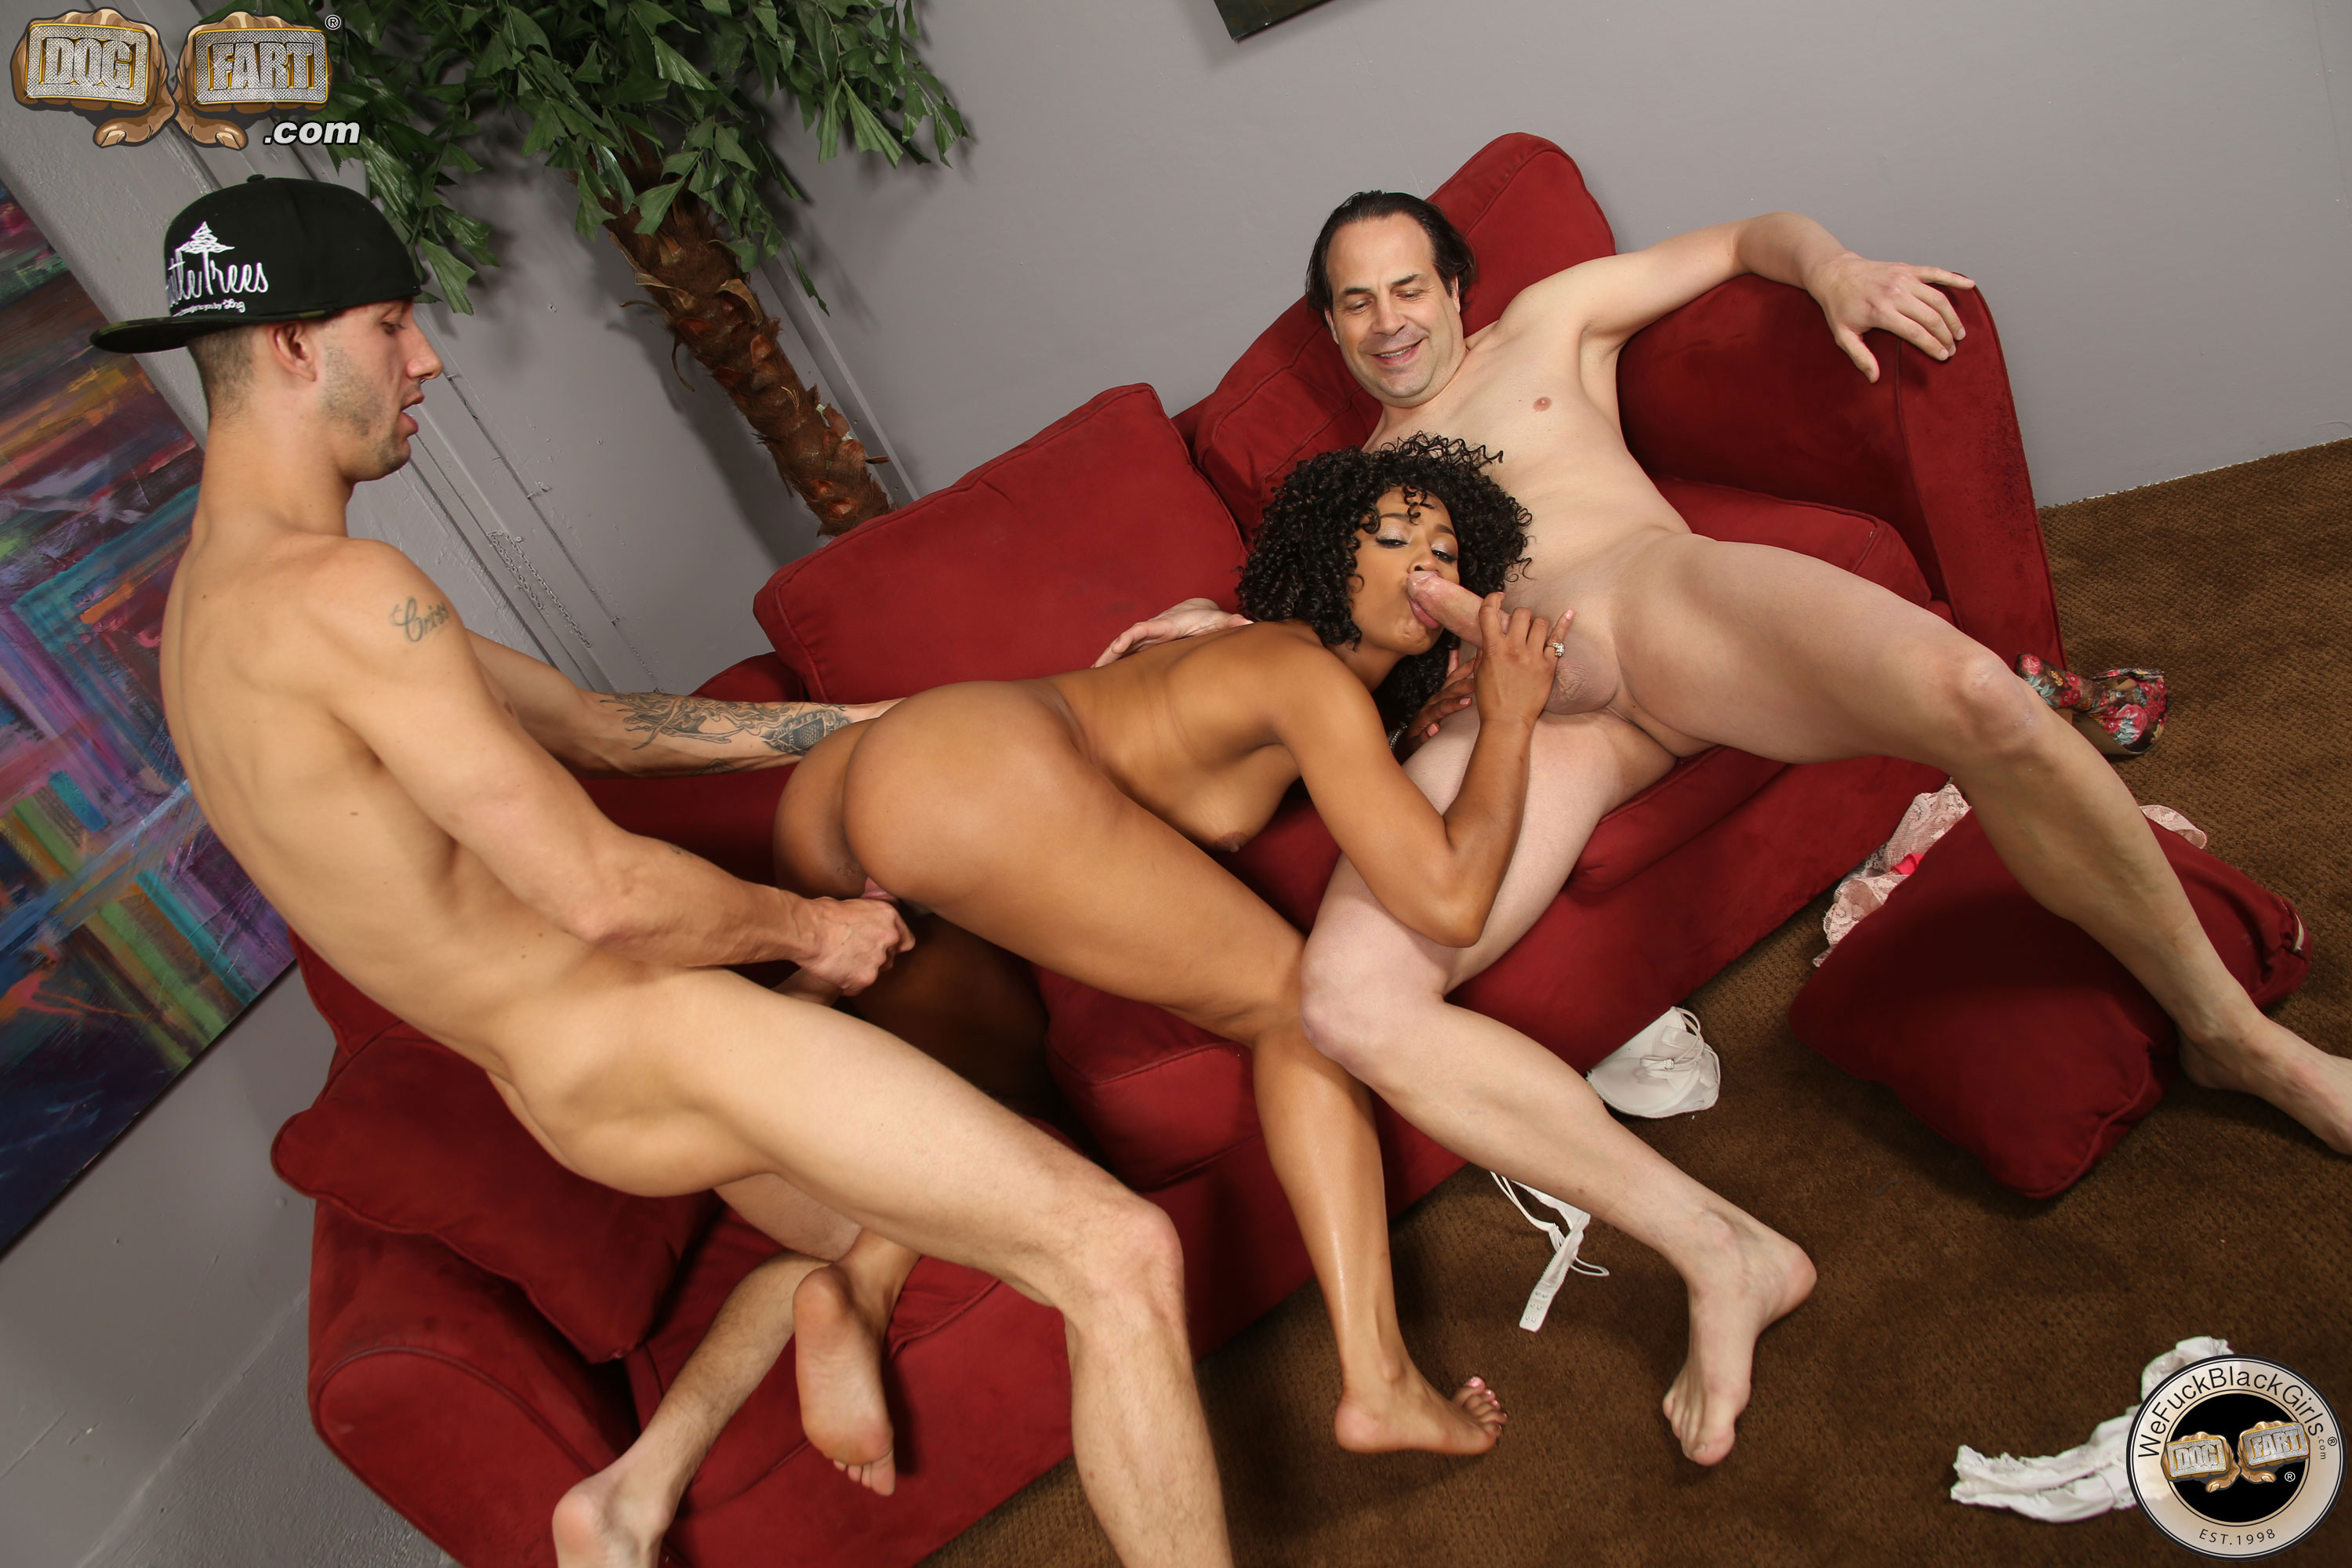 successful, Fucking old weman sweet and hot mature